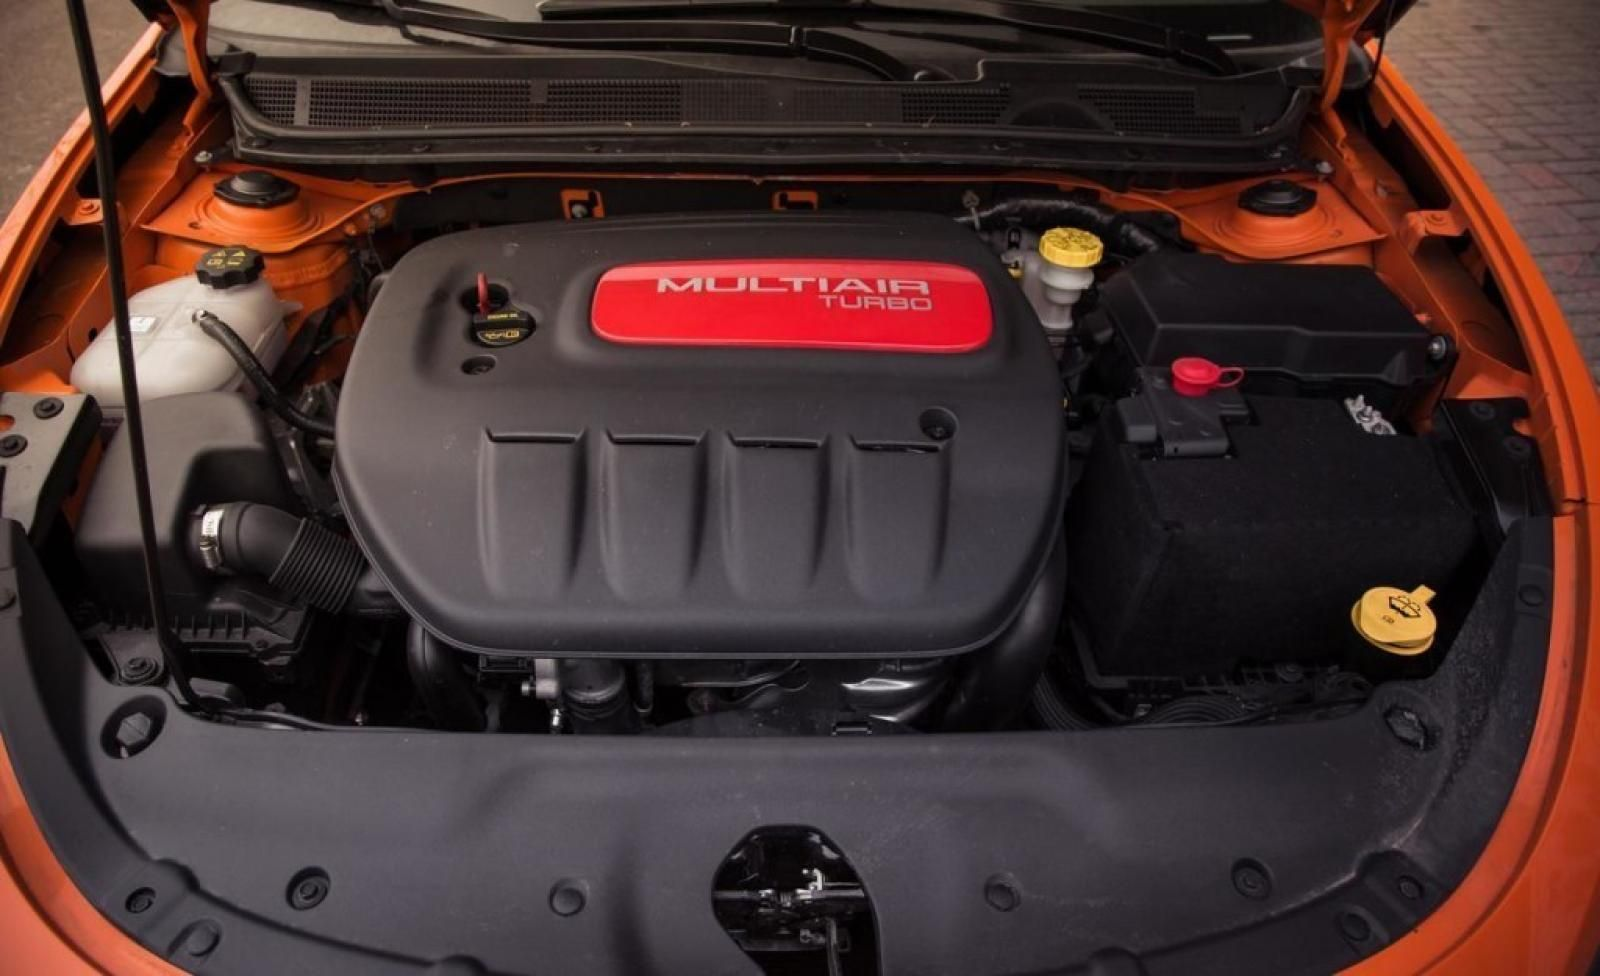 2016 Dodge Dart SRT Engine | Dodge | Pinterest | Darts, Engine and Cars